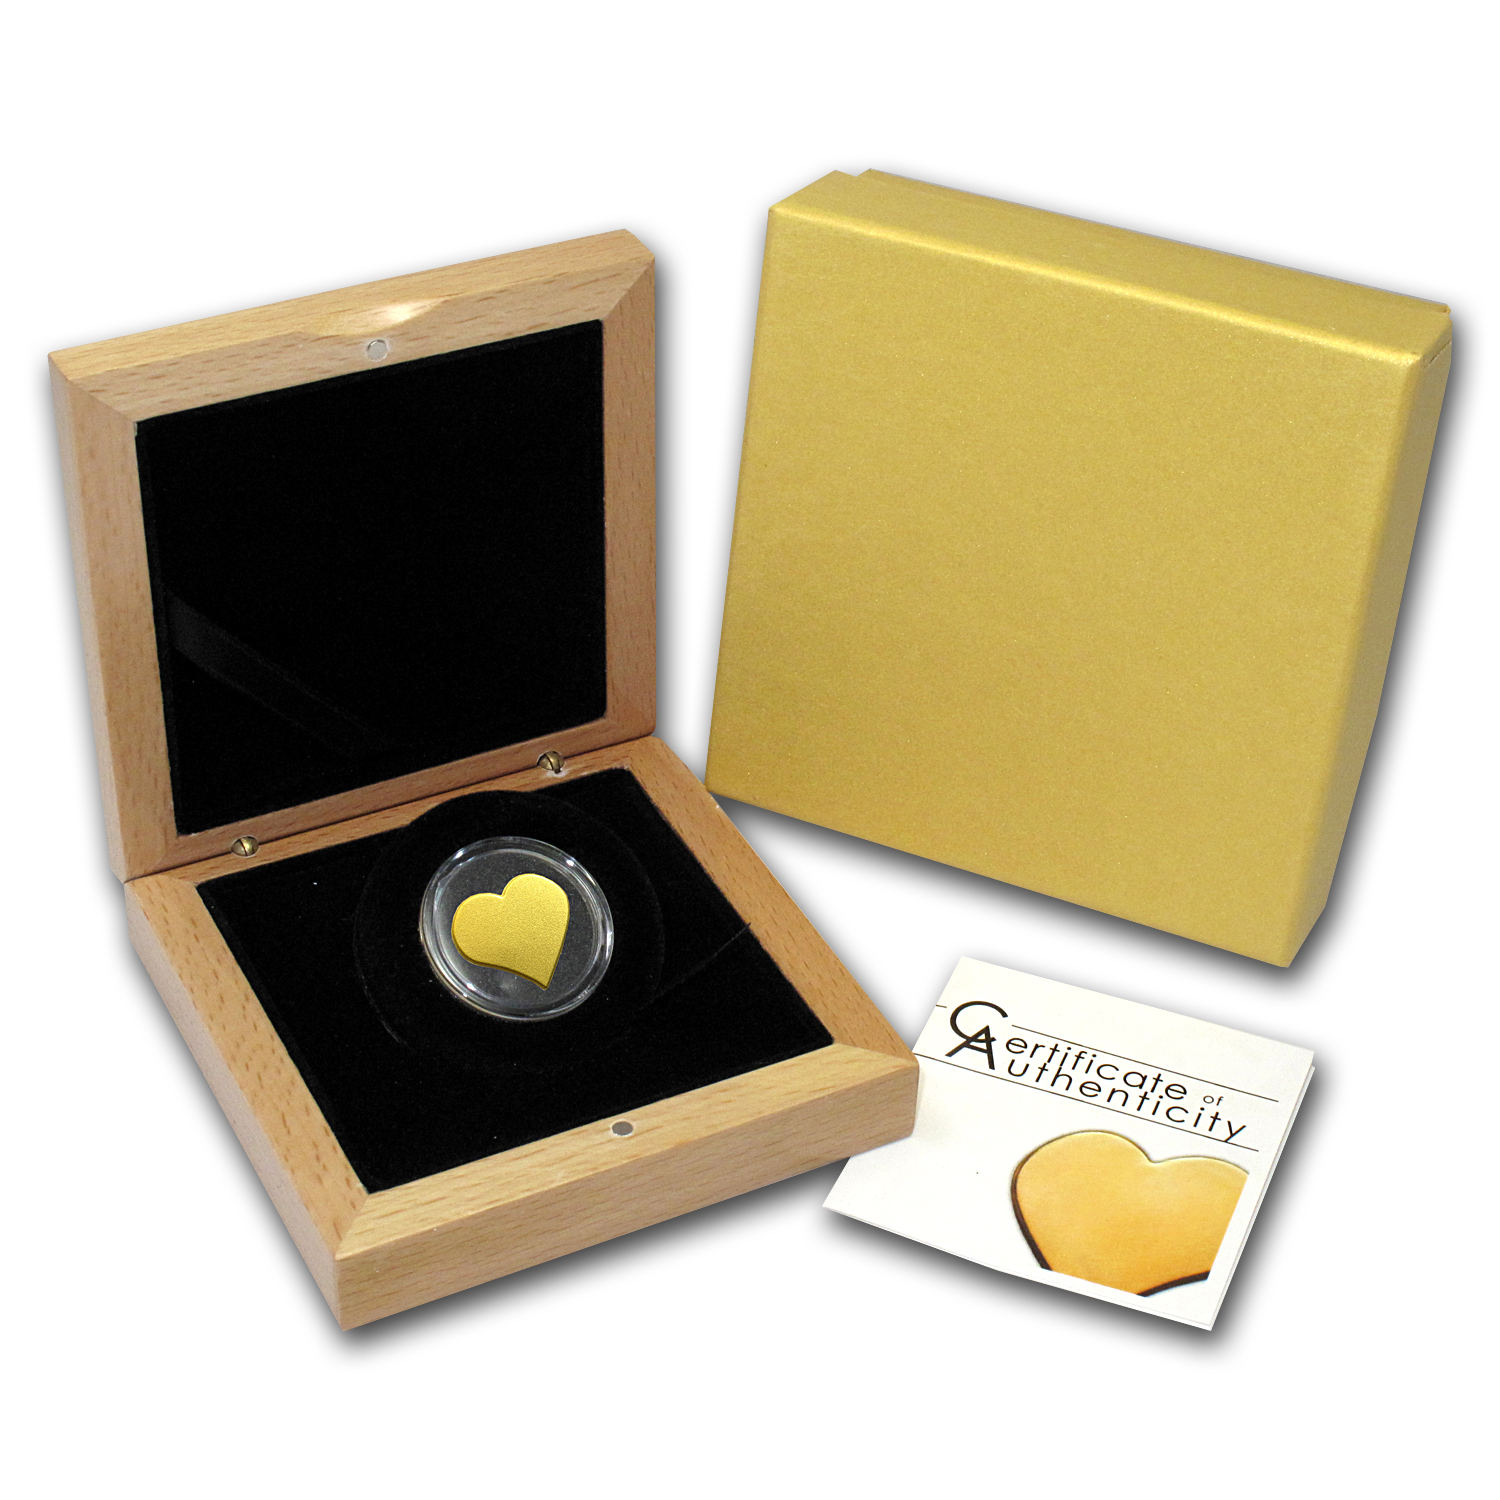 Palau Gold $1 Everlasting Love Heart Coin (1/2 gram of Pure Gold)